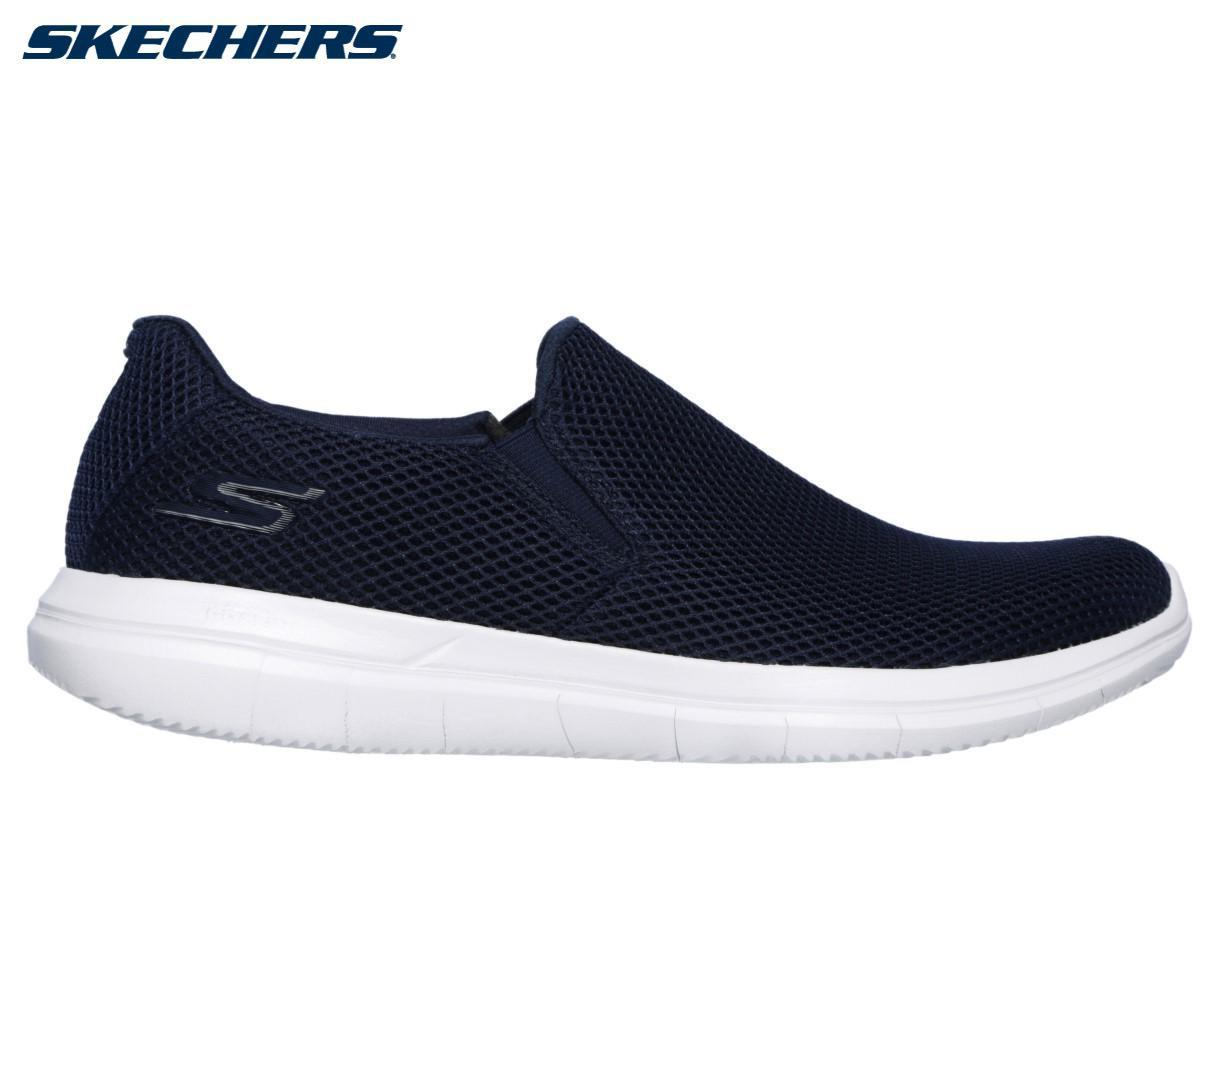 0dc818adbbe 54018-NVW Navy Skechers Go Flex 2 Compact Slip On Shoes For Men